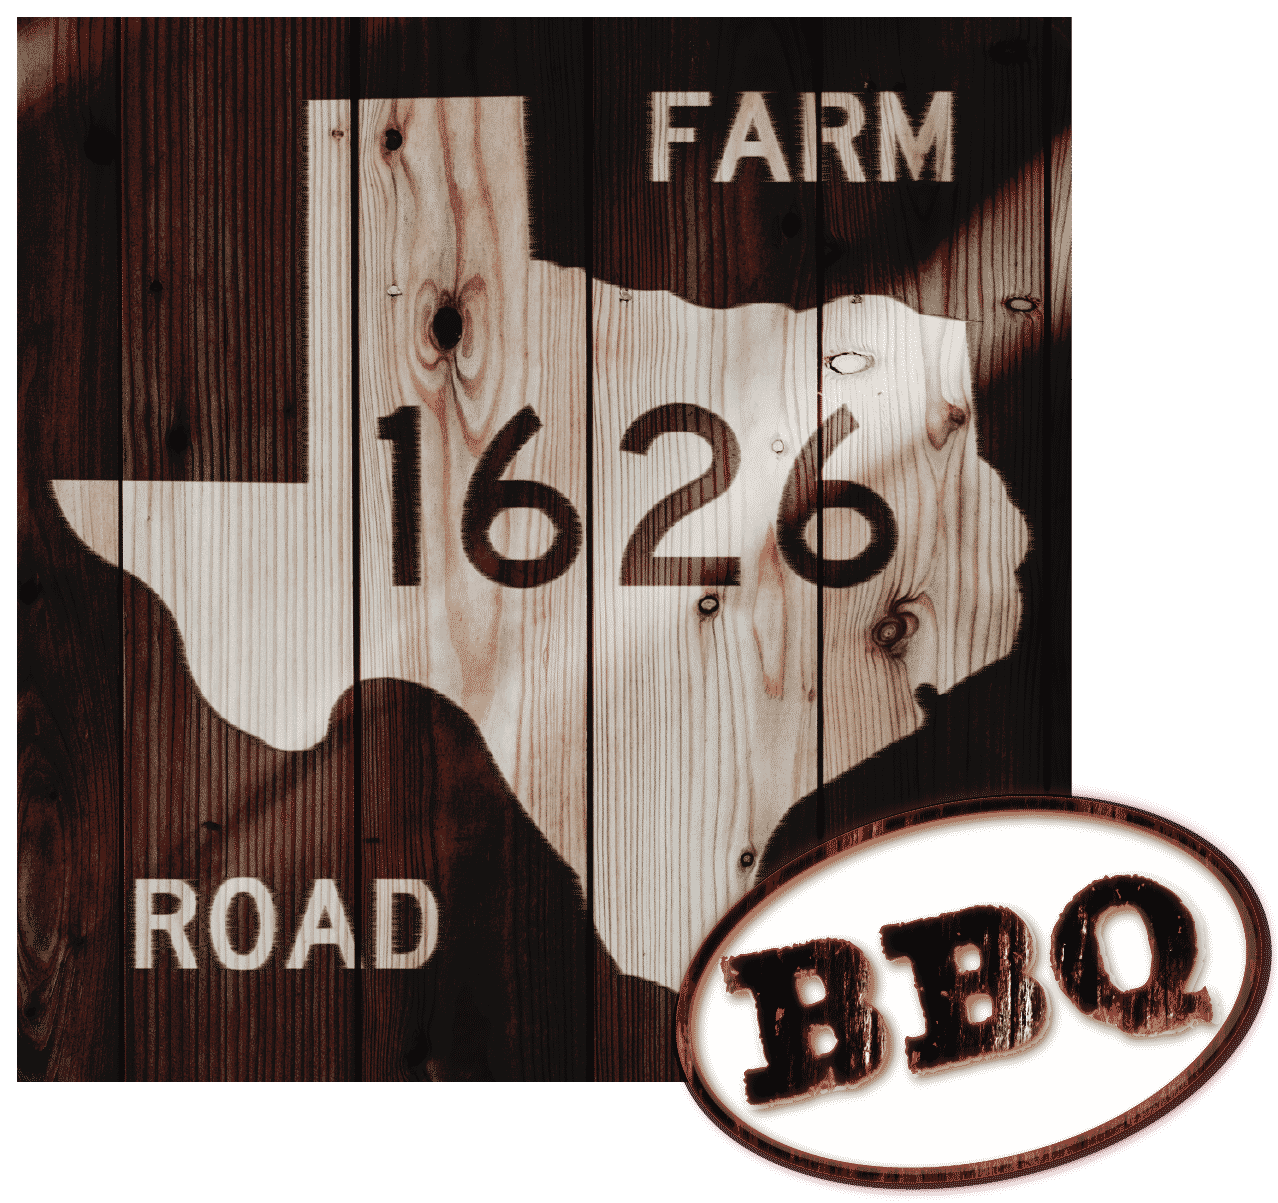 Texas Beef & Cattle Company